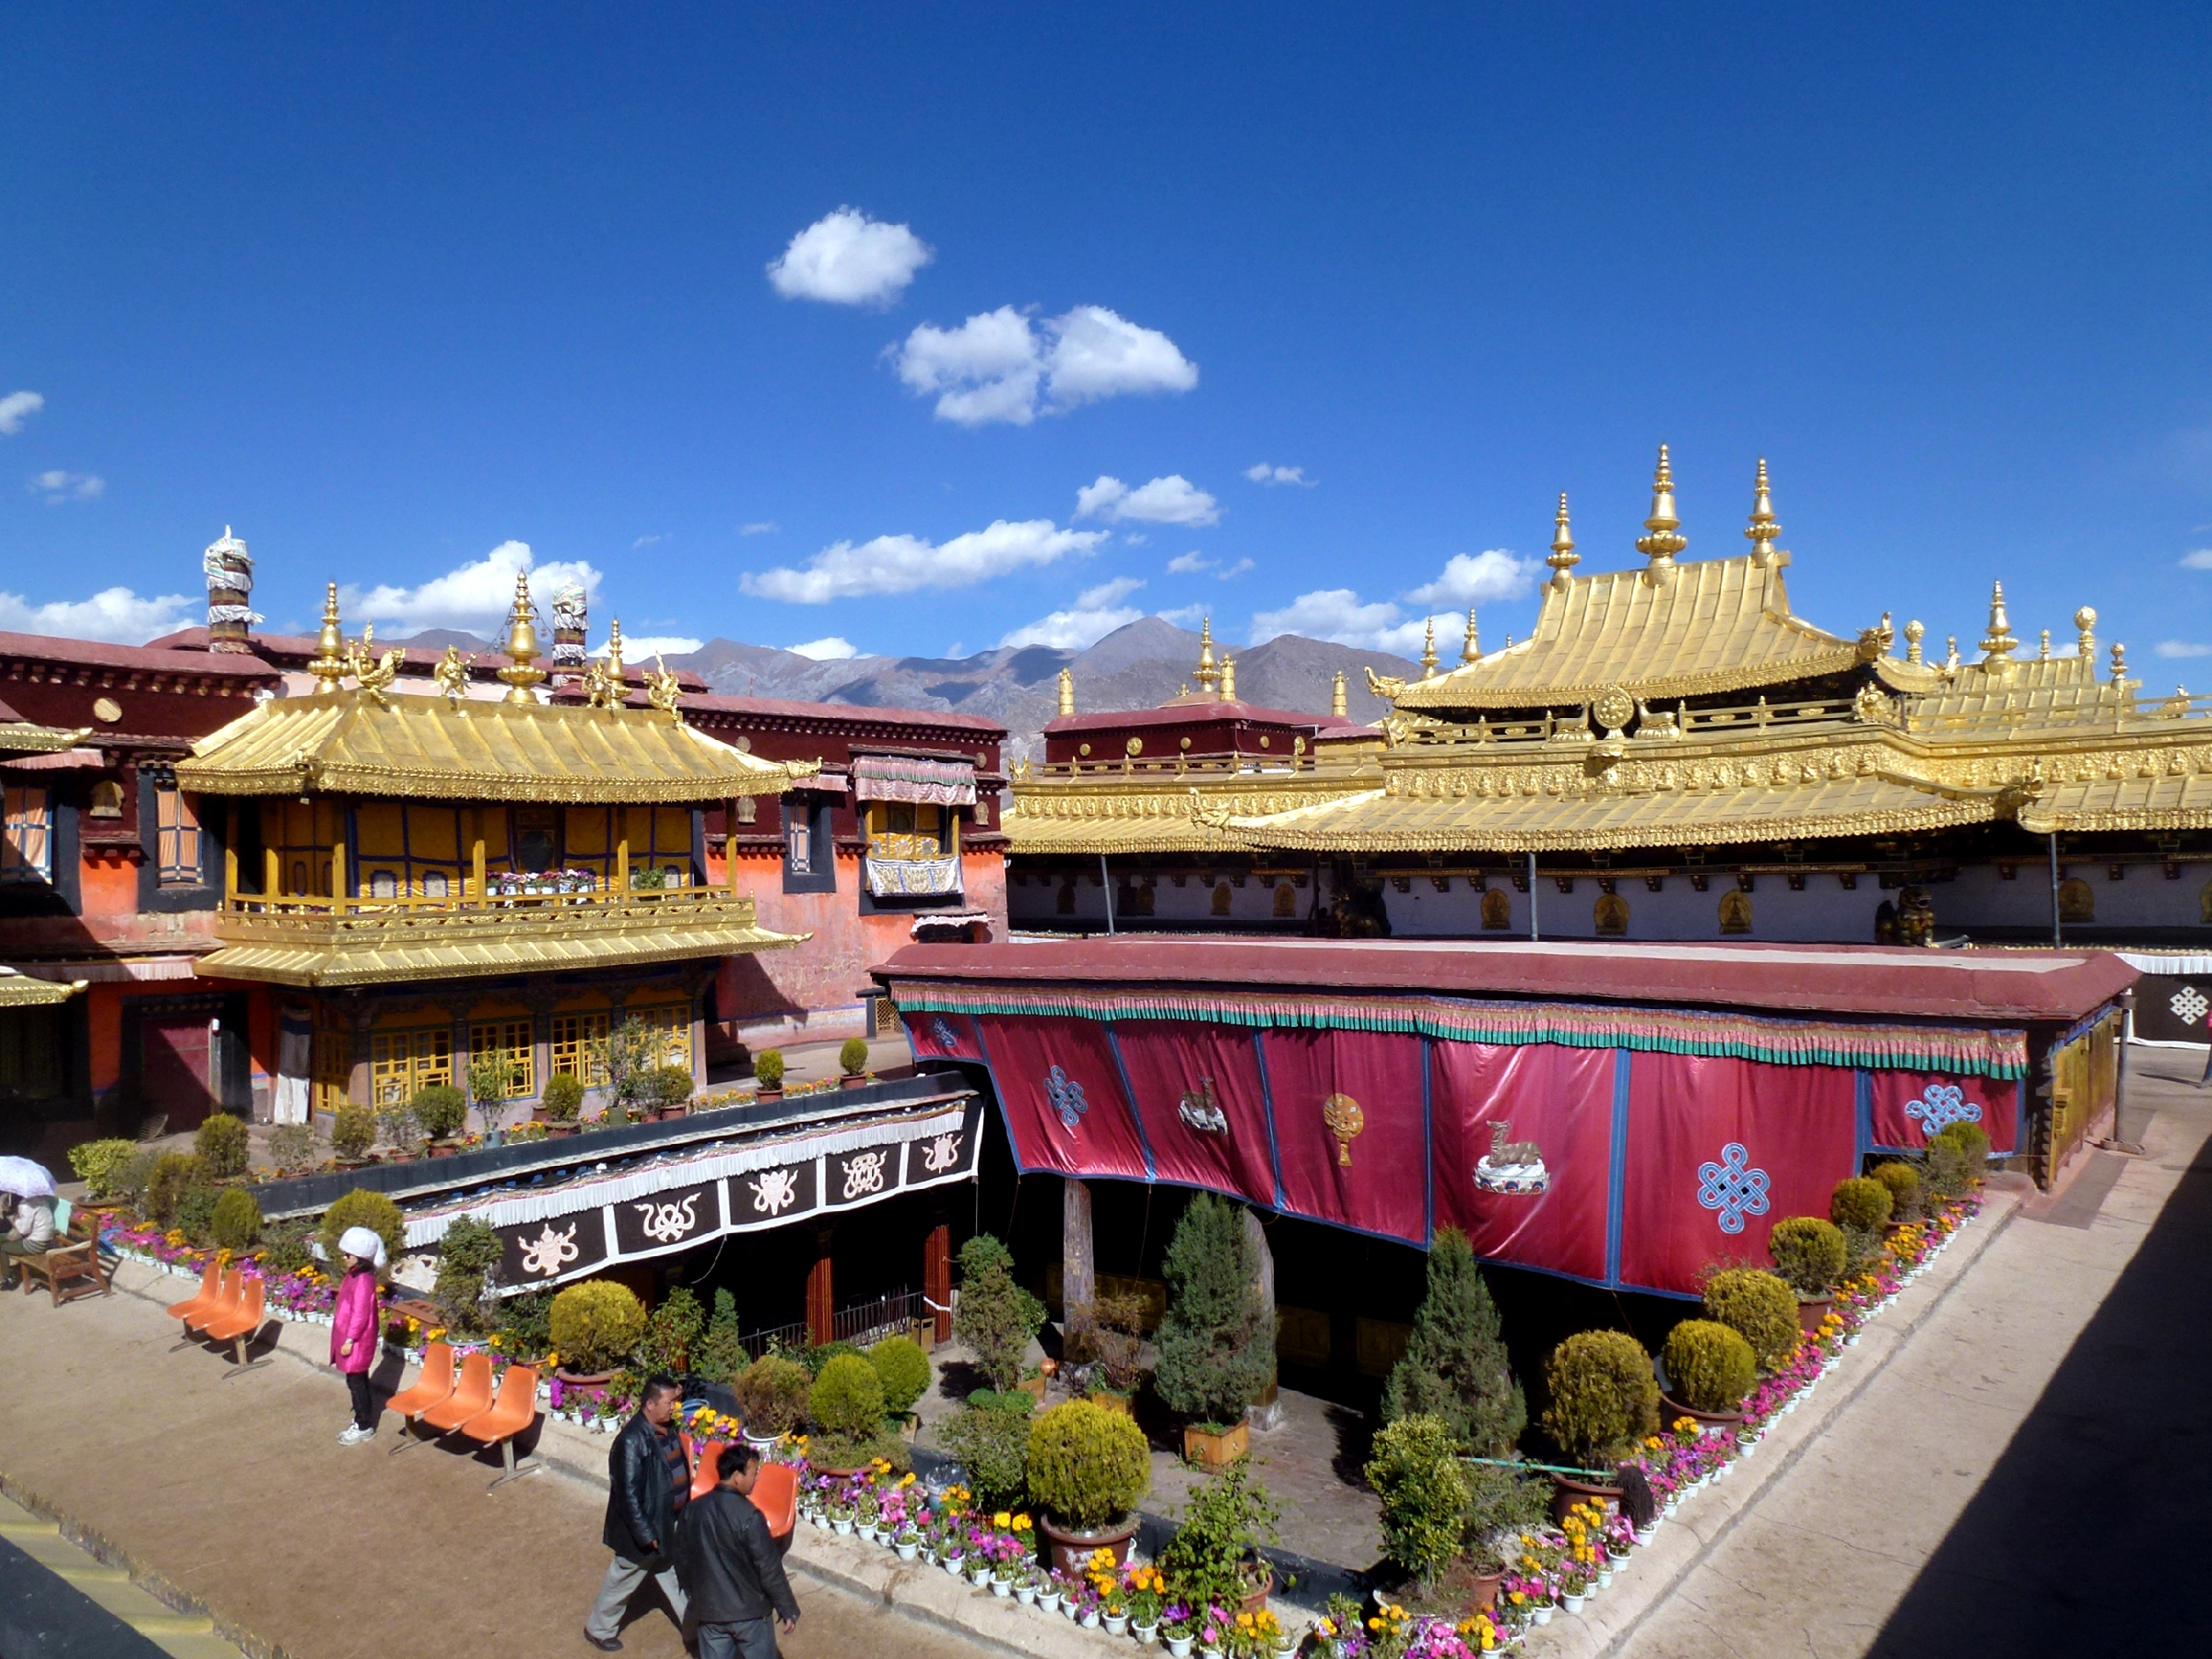 Arial view of Jokhang temple in Bhutan